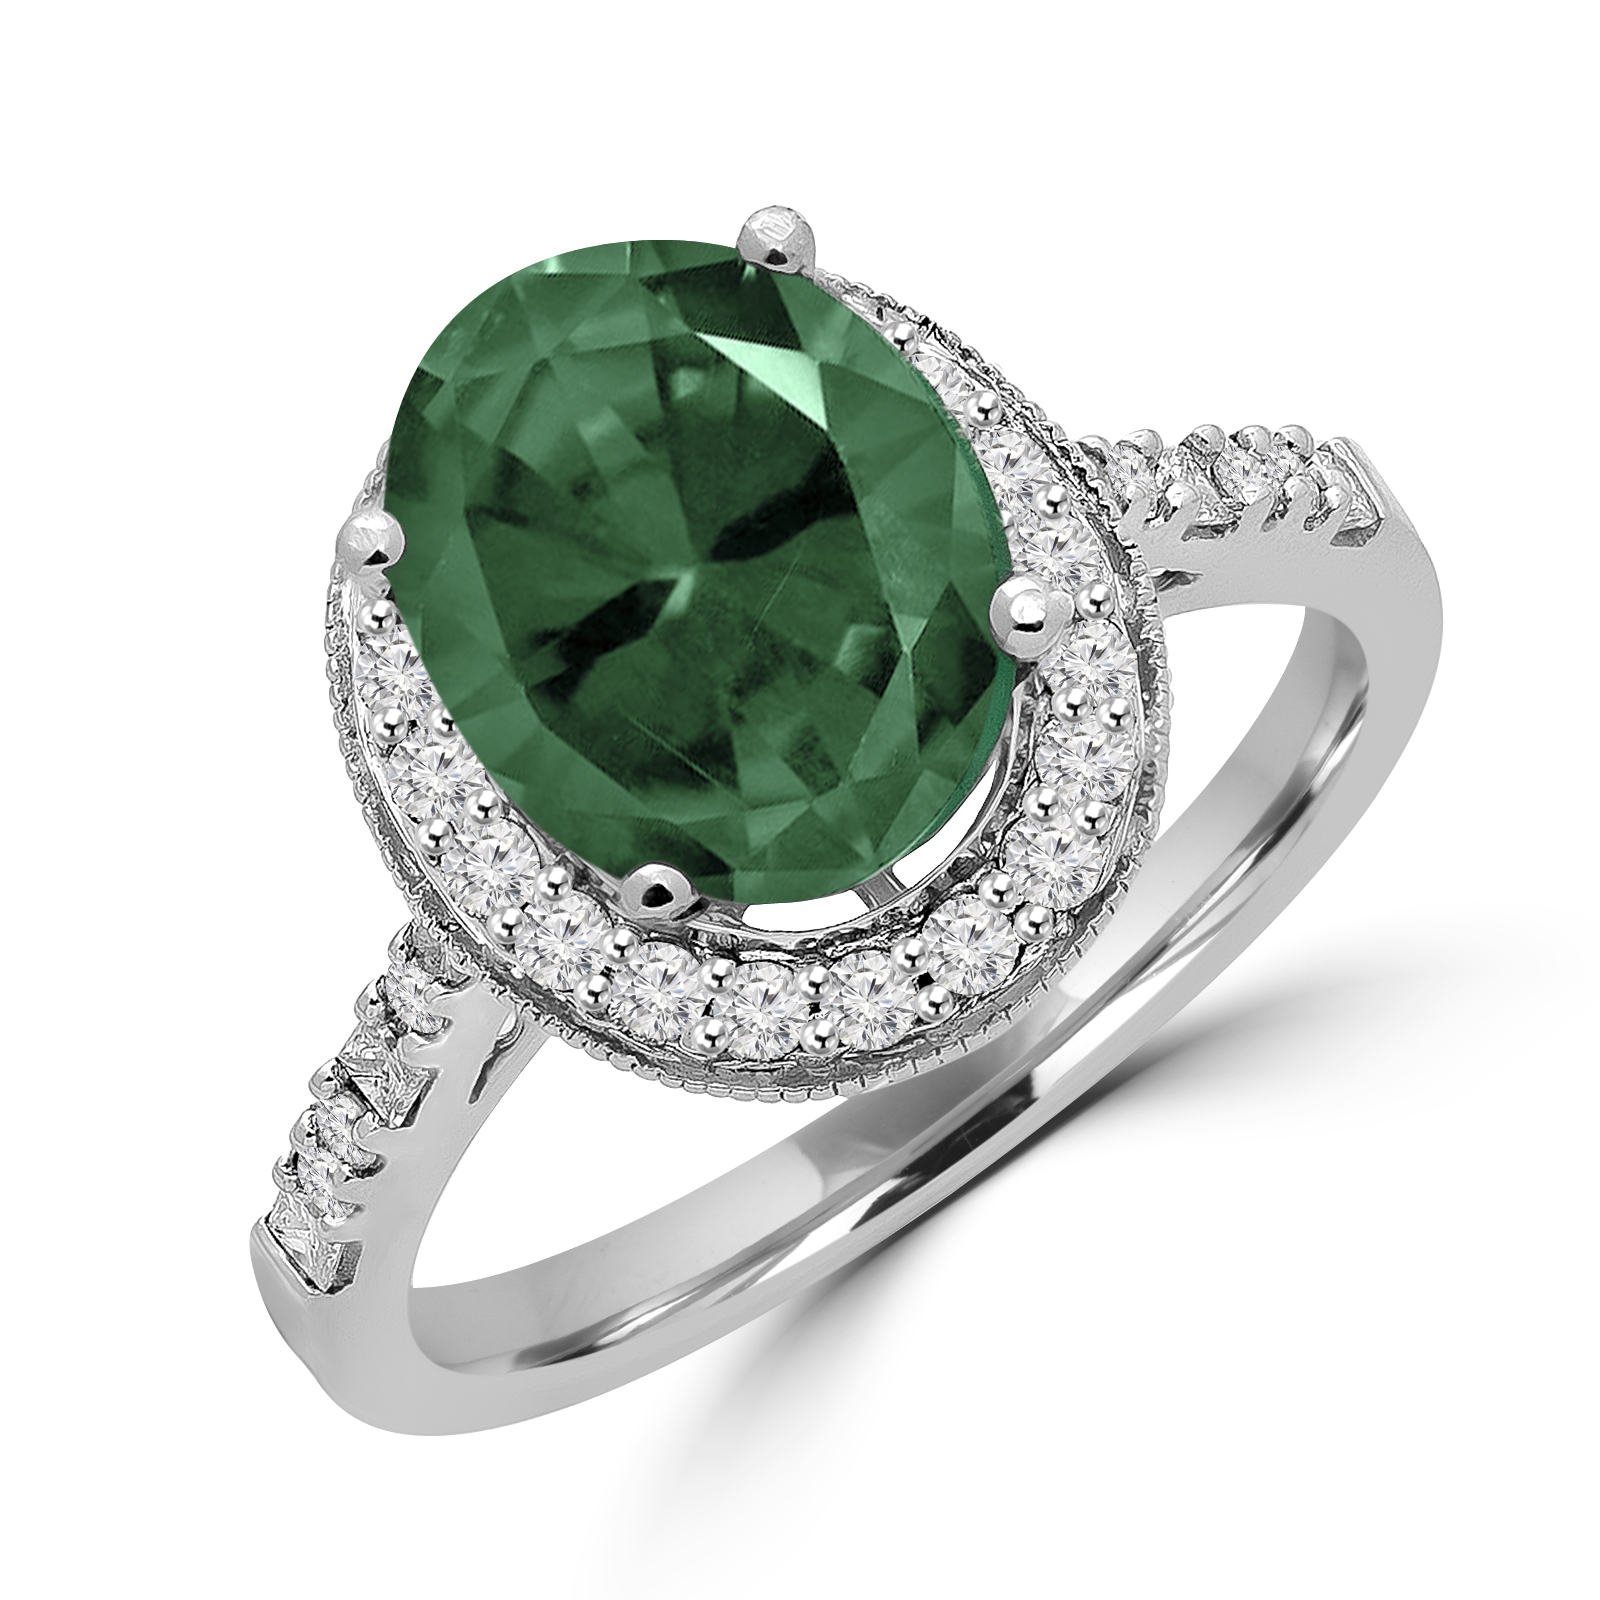 gemstone gem j diamond sapphire dress store ring ladies gallery products rubyvale size green rings